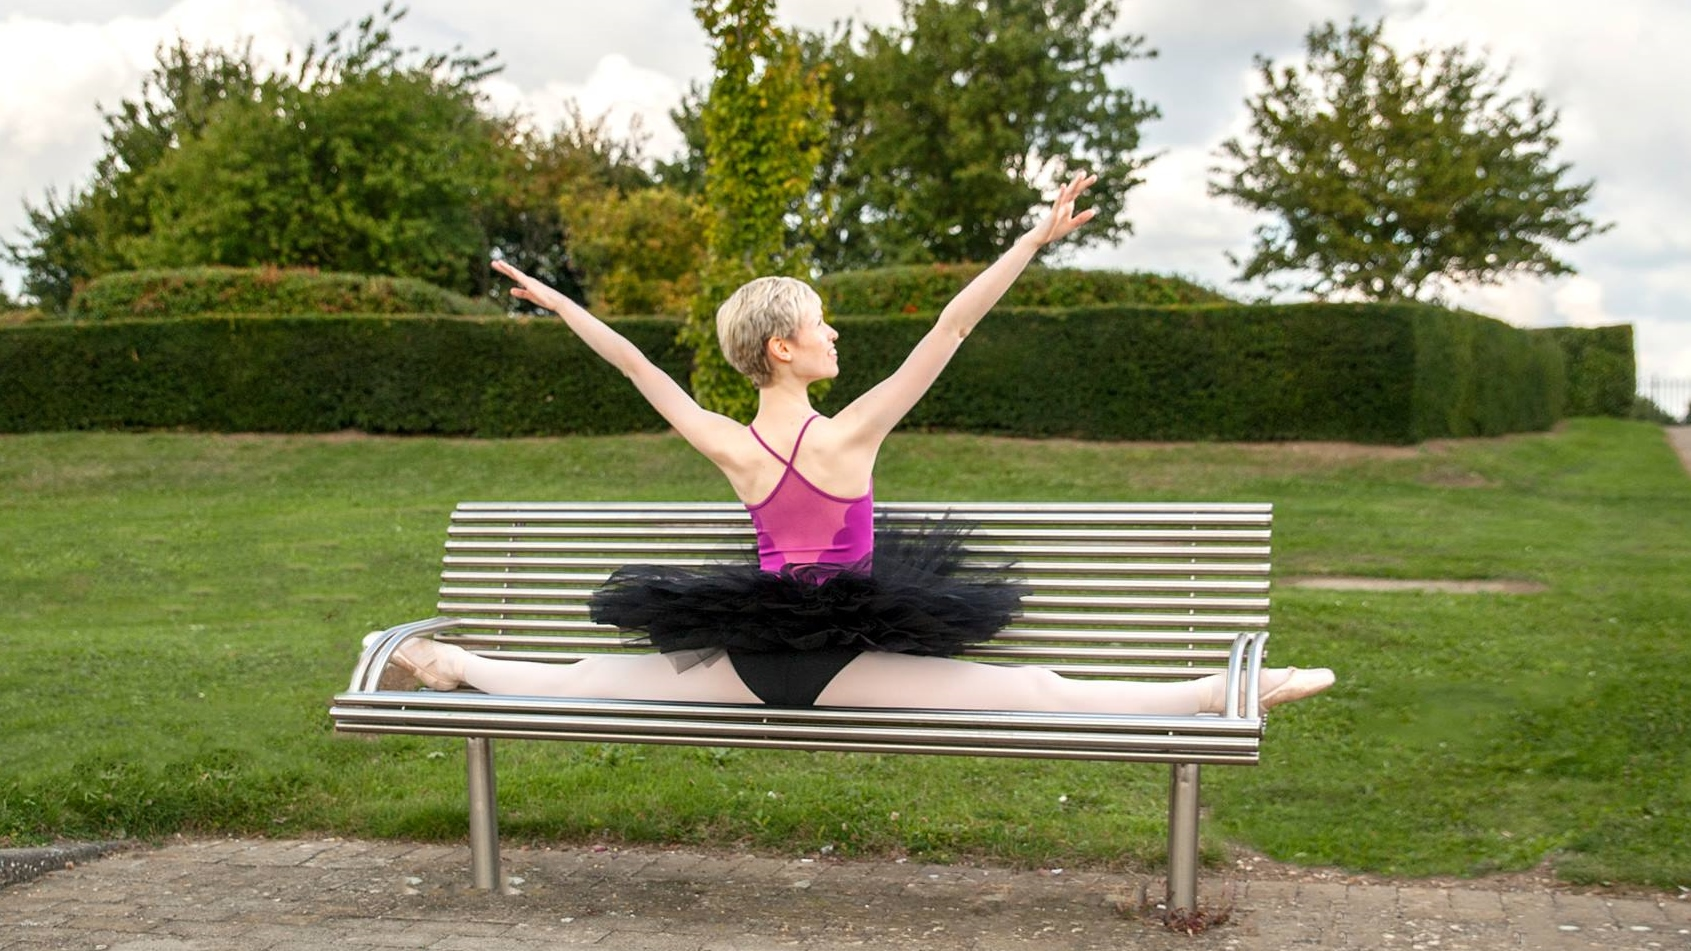 Georgina Butler, wearing a pink leotard and black tutu, sitting on a bench with her back to the viewer. Her legs are in the box splits and her arms are reaching above her head in a wide 'v' shape. Photo by Terry Grehan.